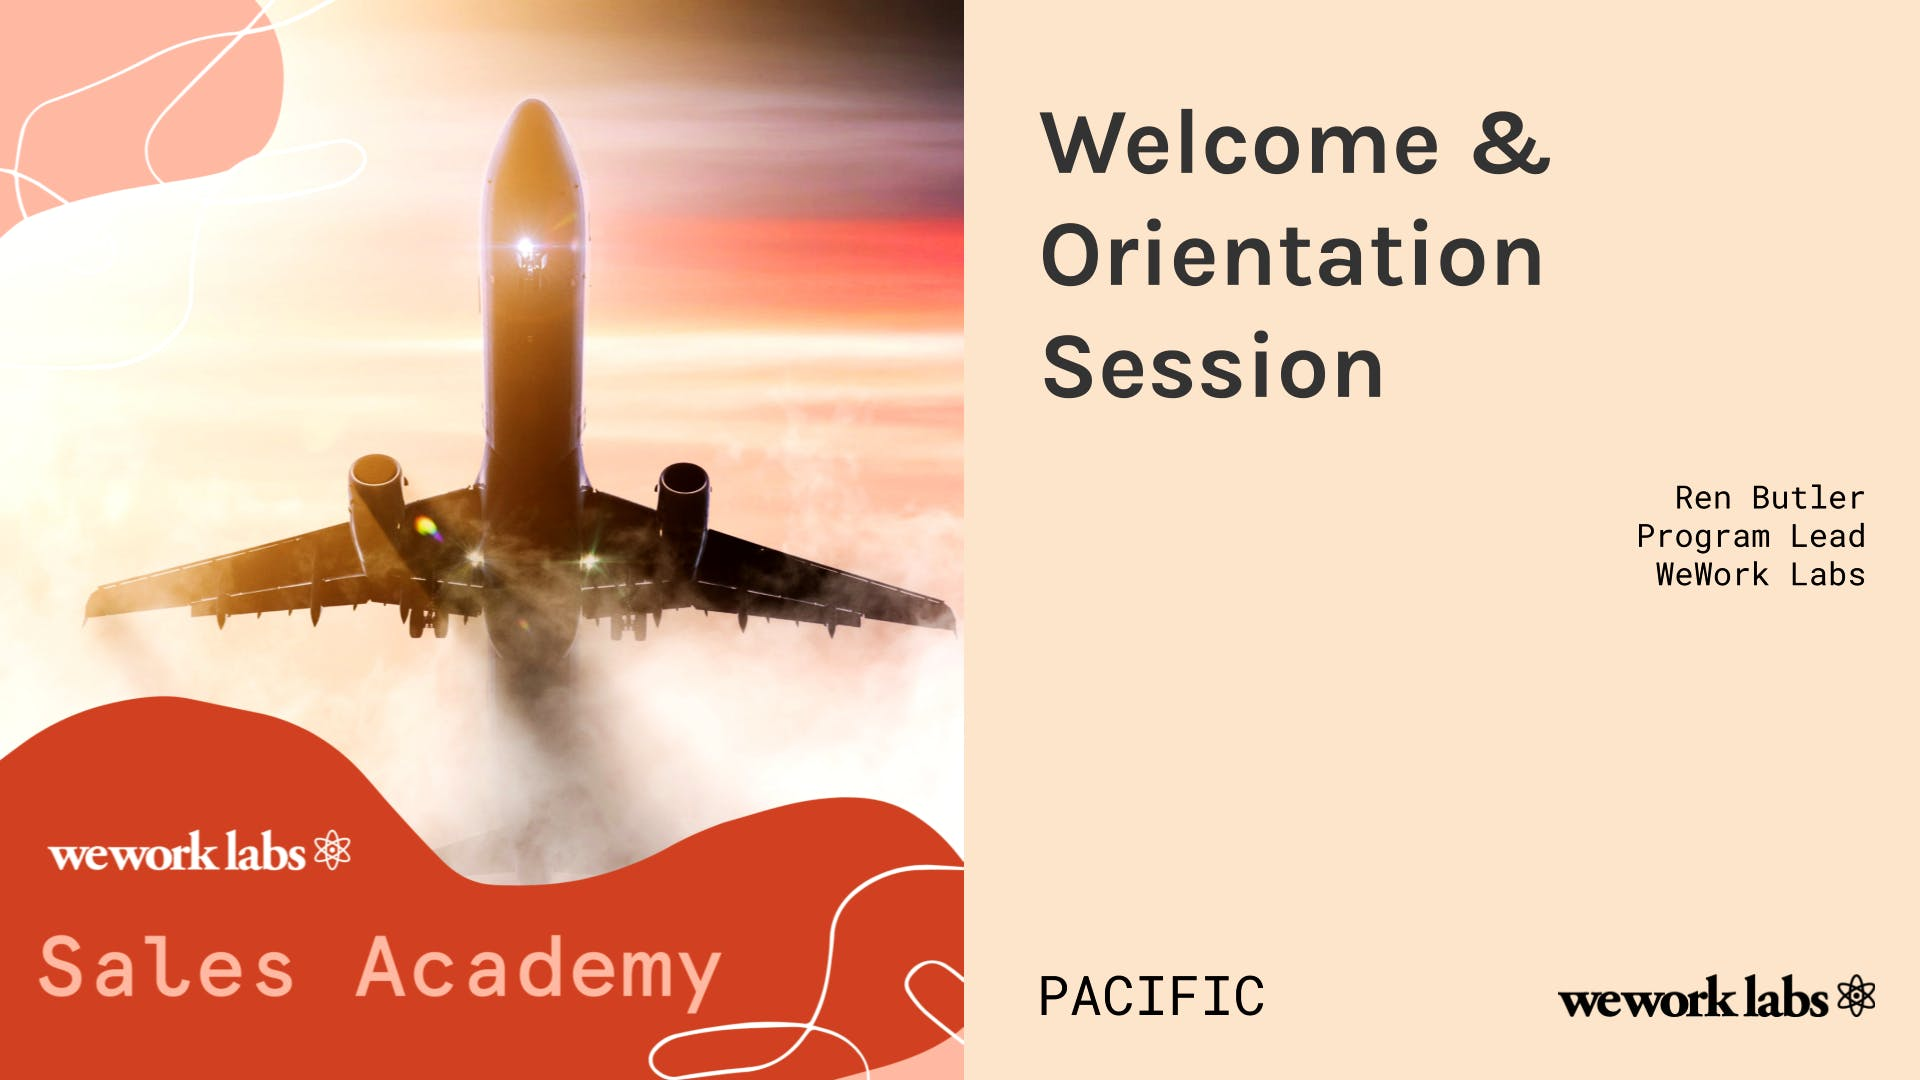 Sales Academy (Pacific): Welcome & Orientation Session